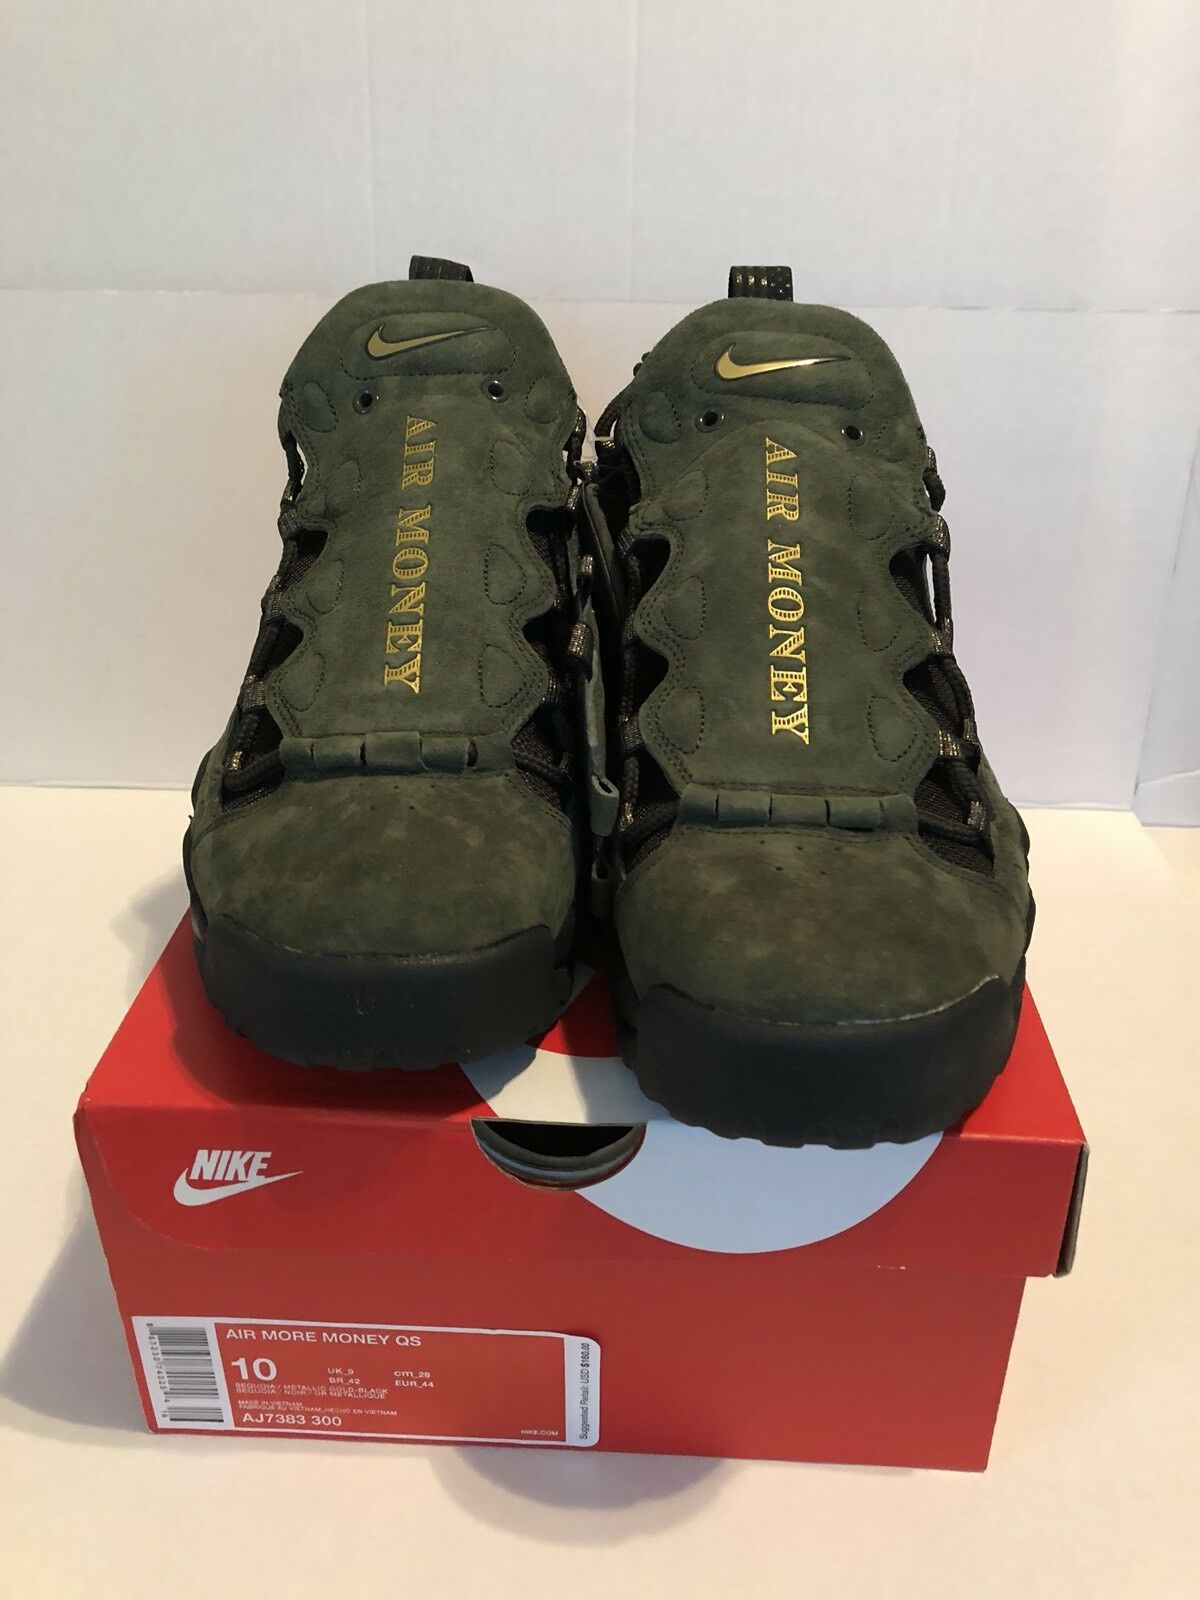 Nike Air More Money QS 2018 Currency Pack US Dollar AJ7383-300 Size 10